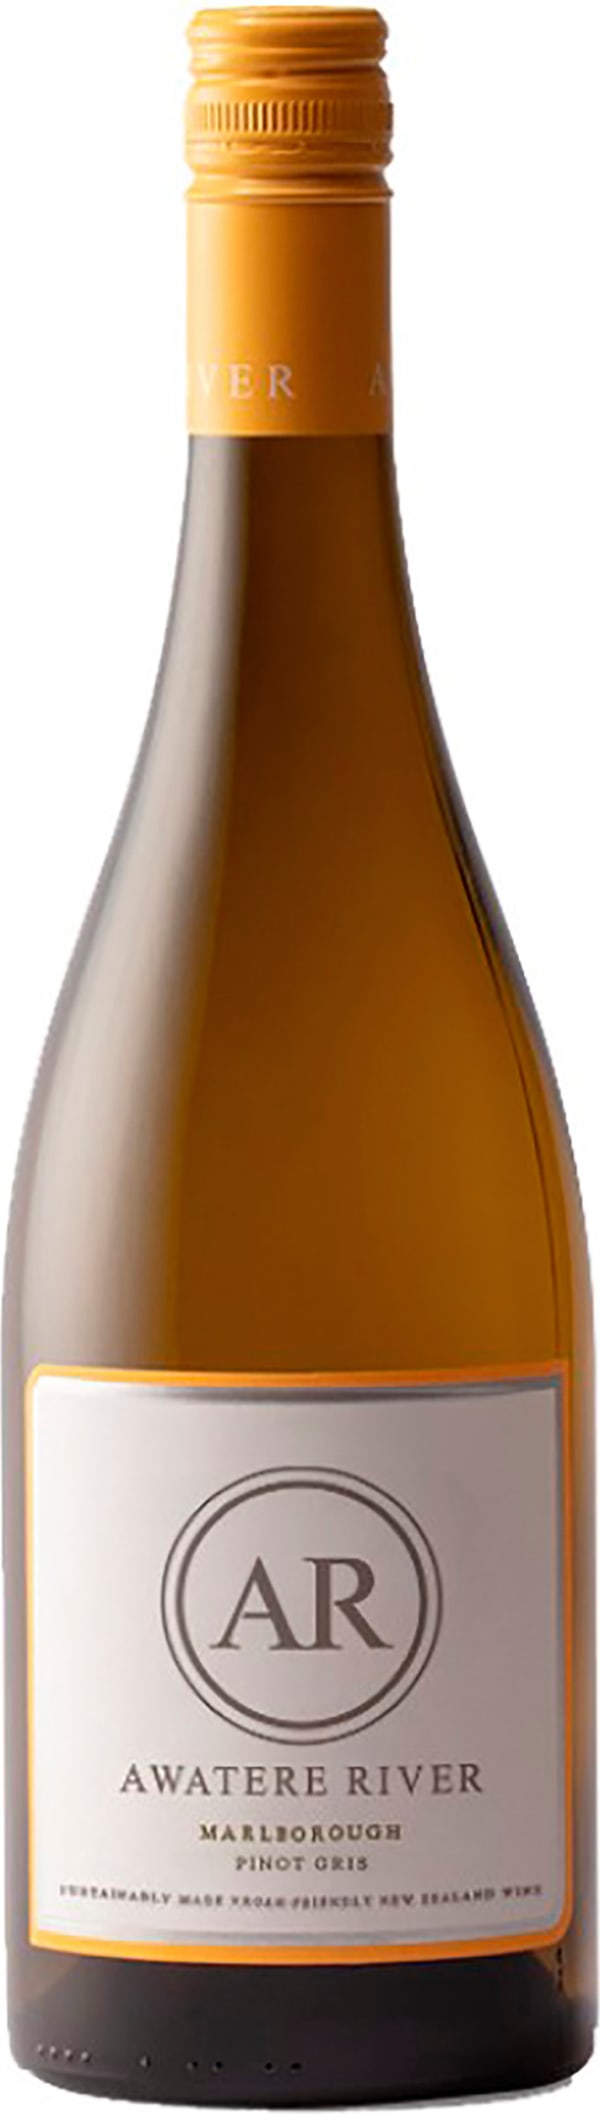 Awatere River Pinot Gris 2017